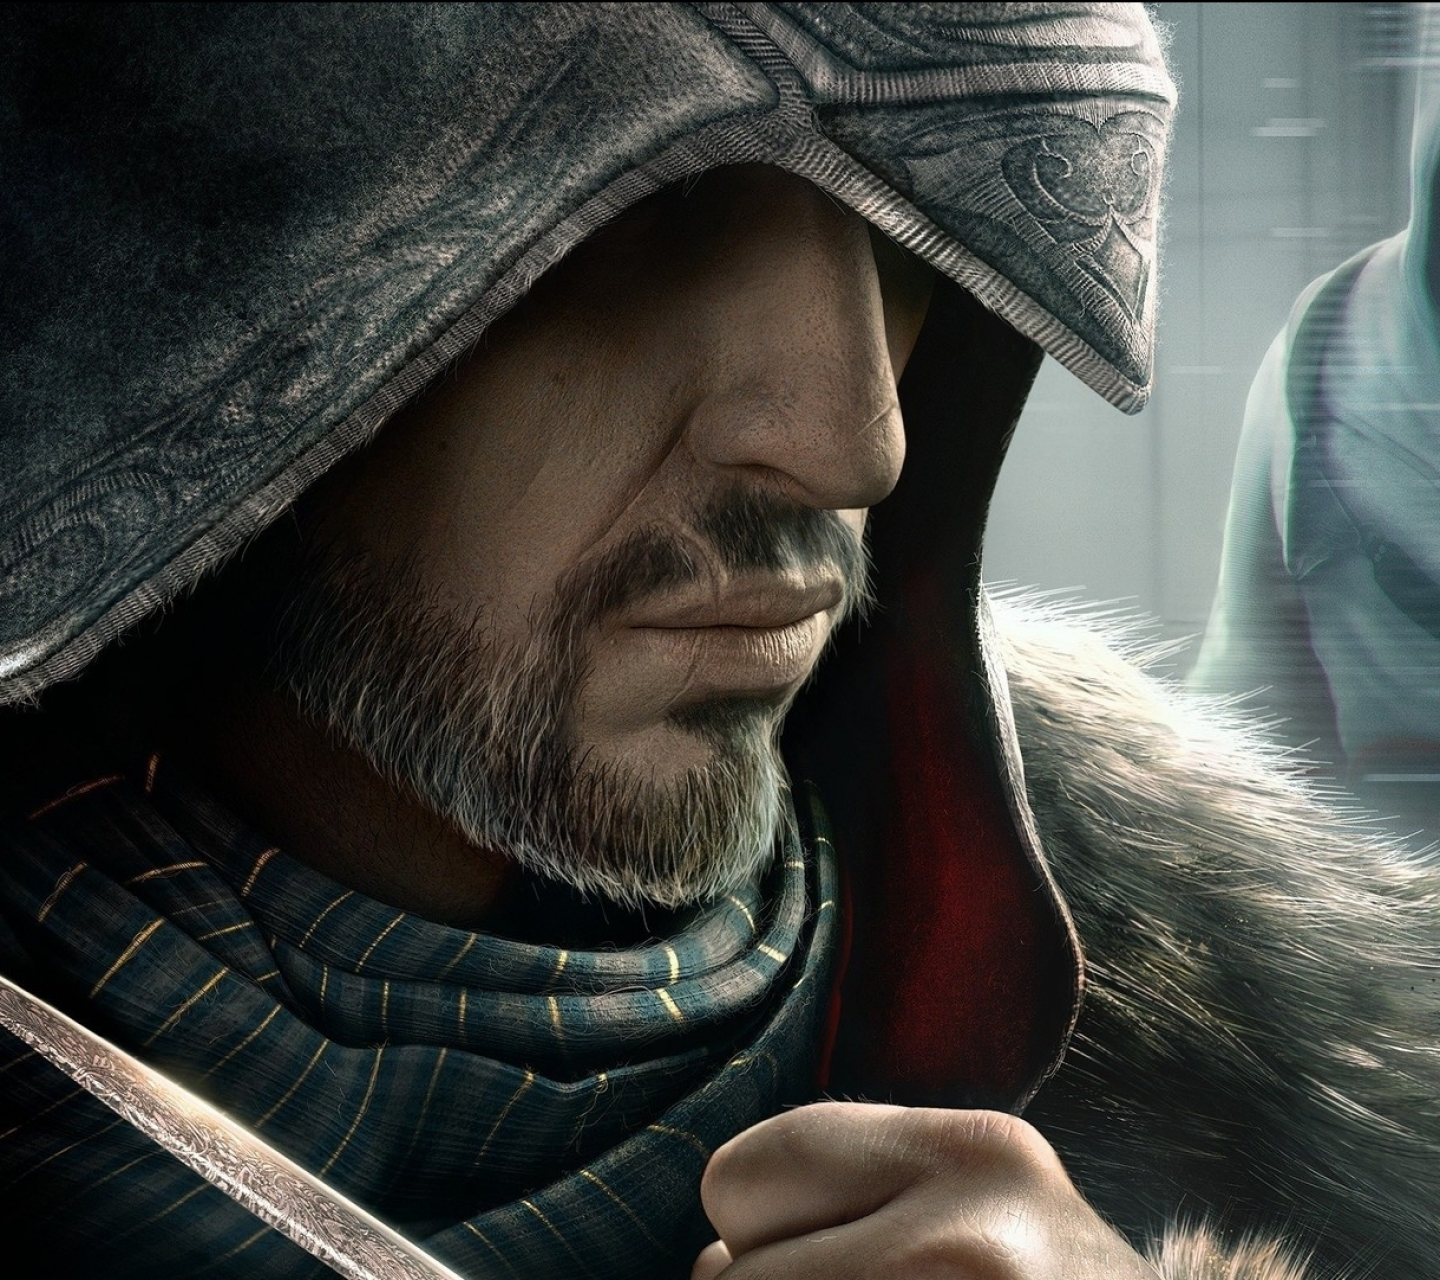 131230 video game/assassin's creed: revelations (1440x1280